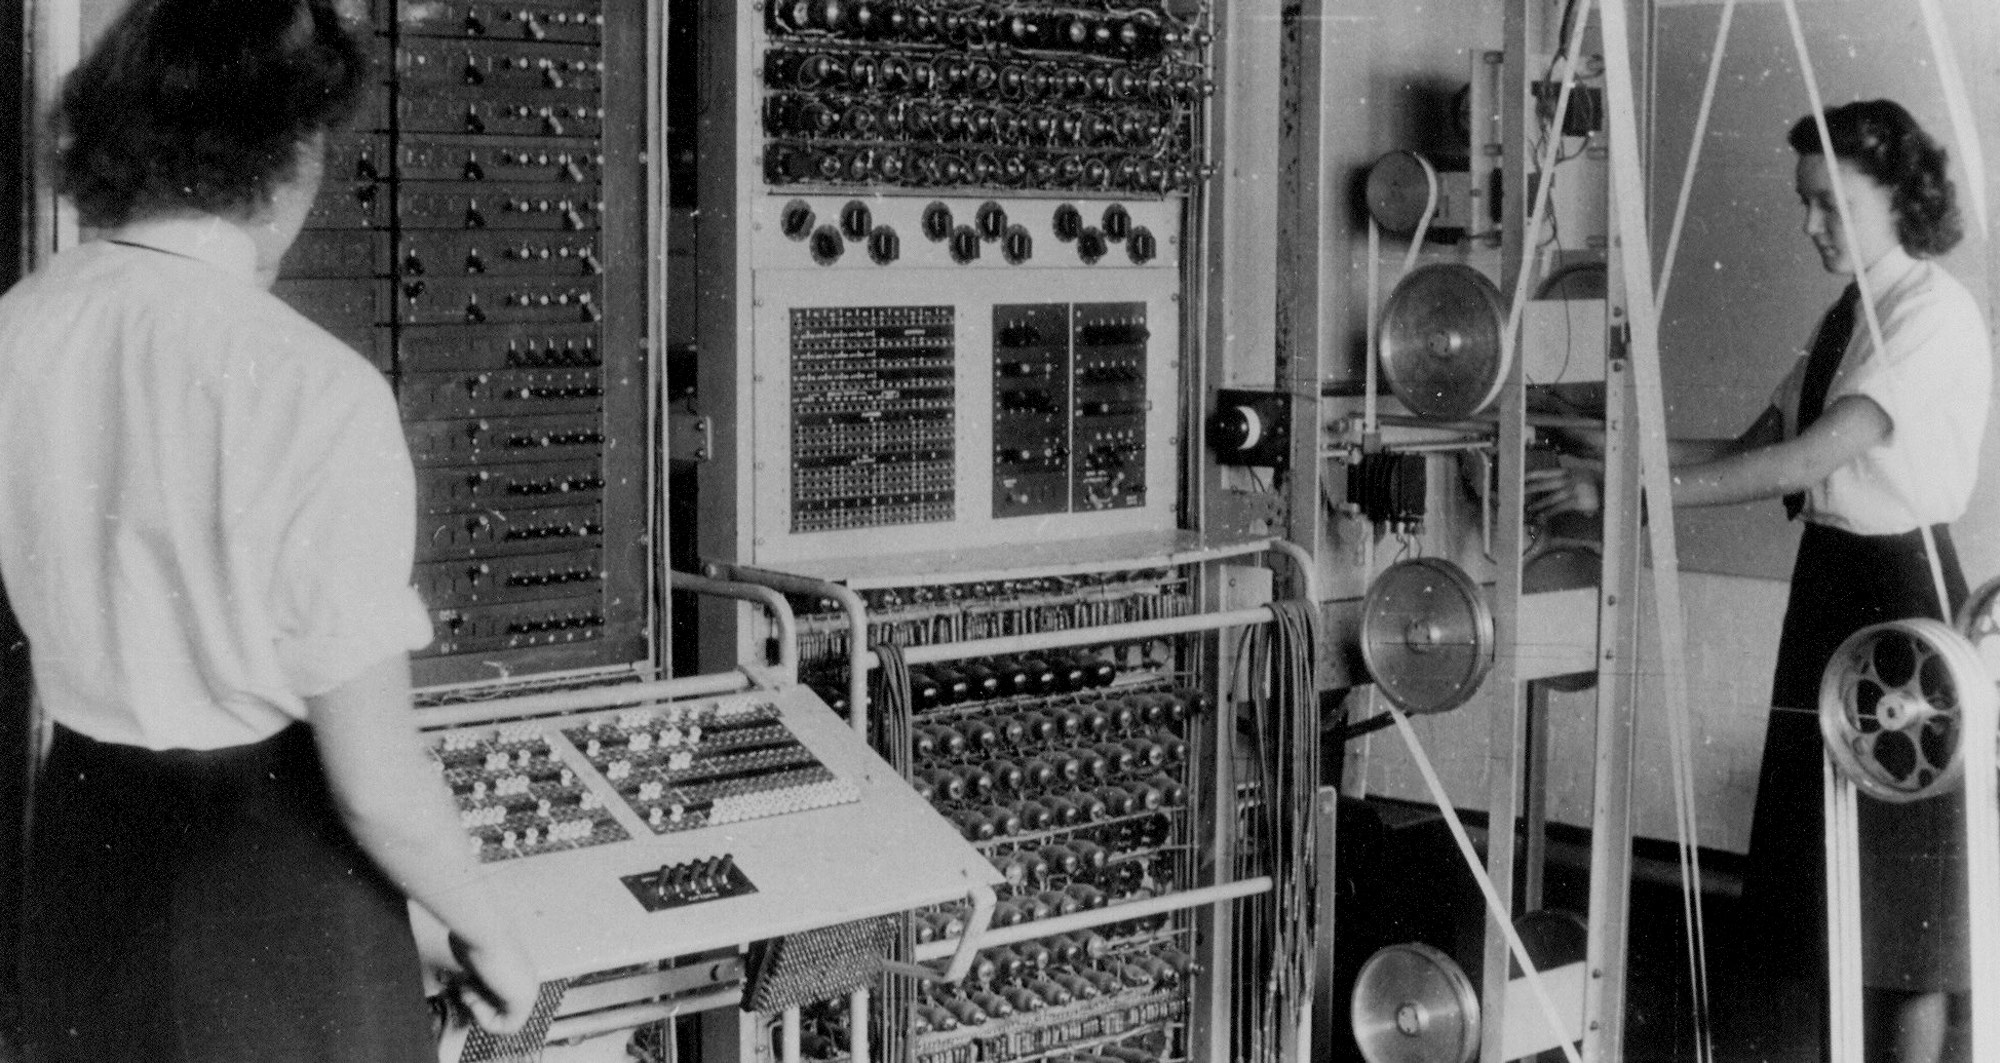 Bletchley codebreakers